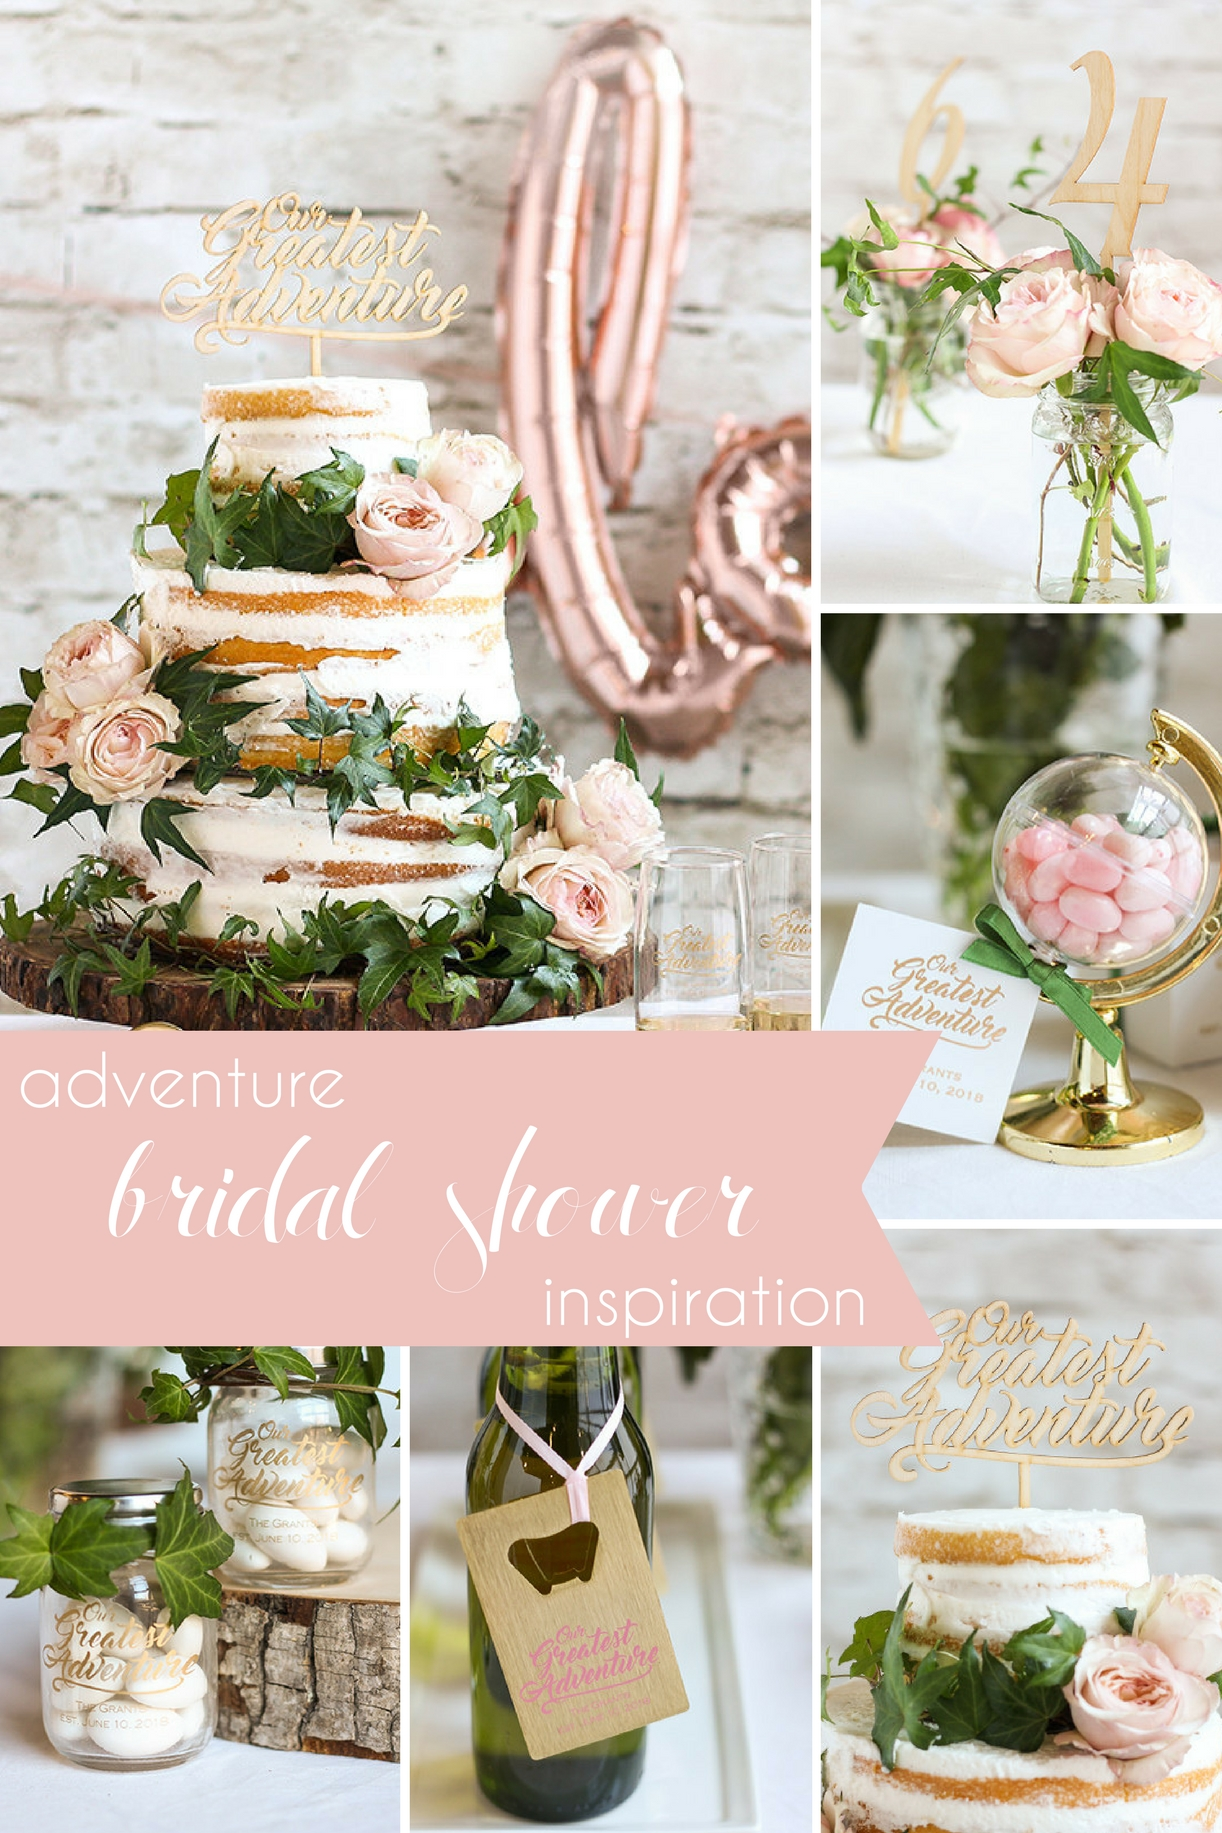 Adventure Bridal Shower Inspiration 187 Hill City Bride